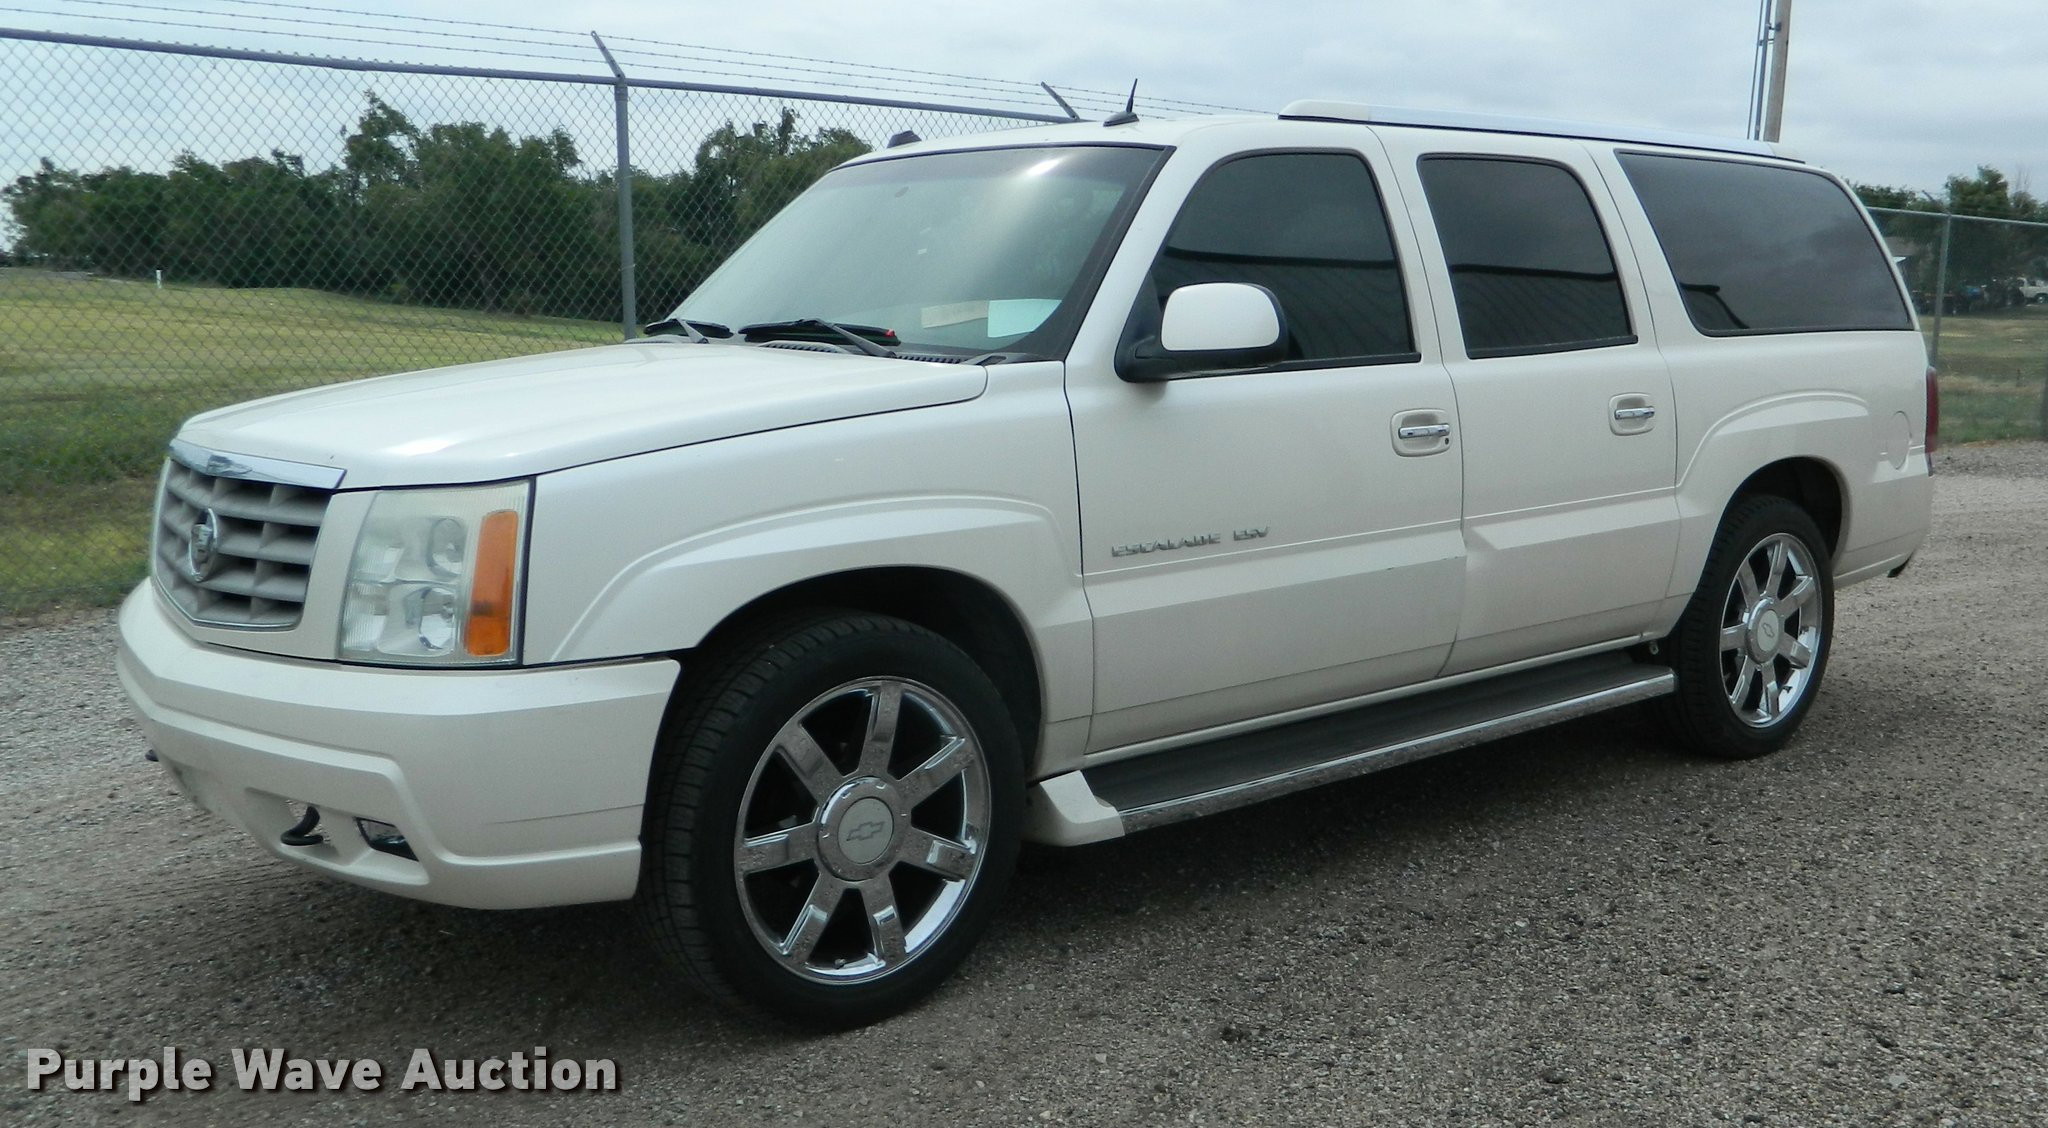 js city sales luxury cadillac in fremont large auto sale escalade for ne vehicle